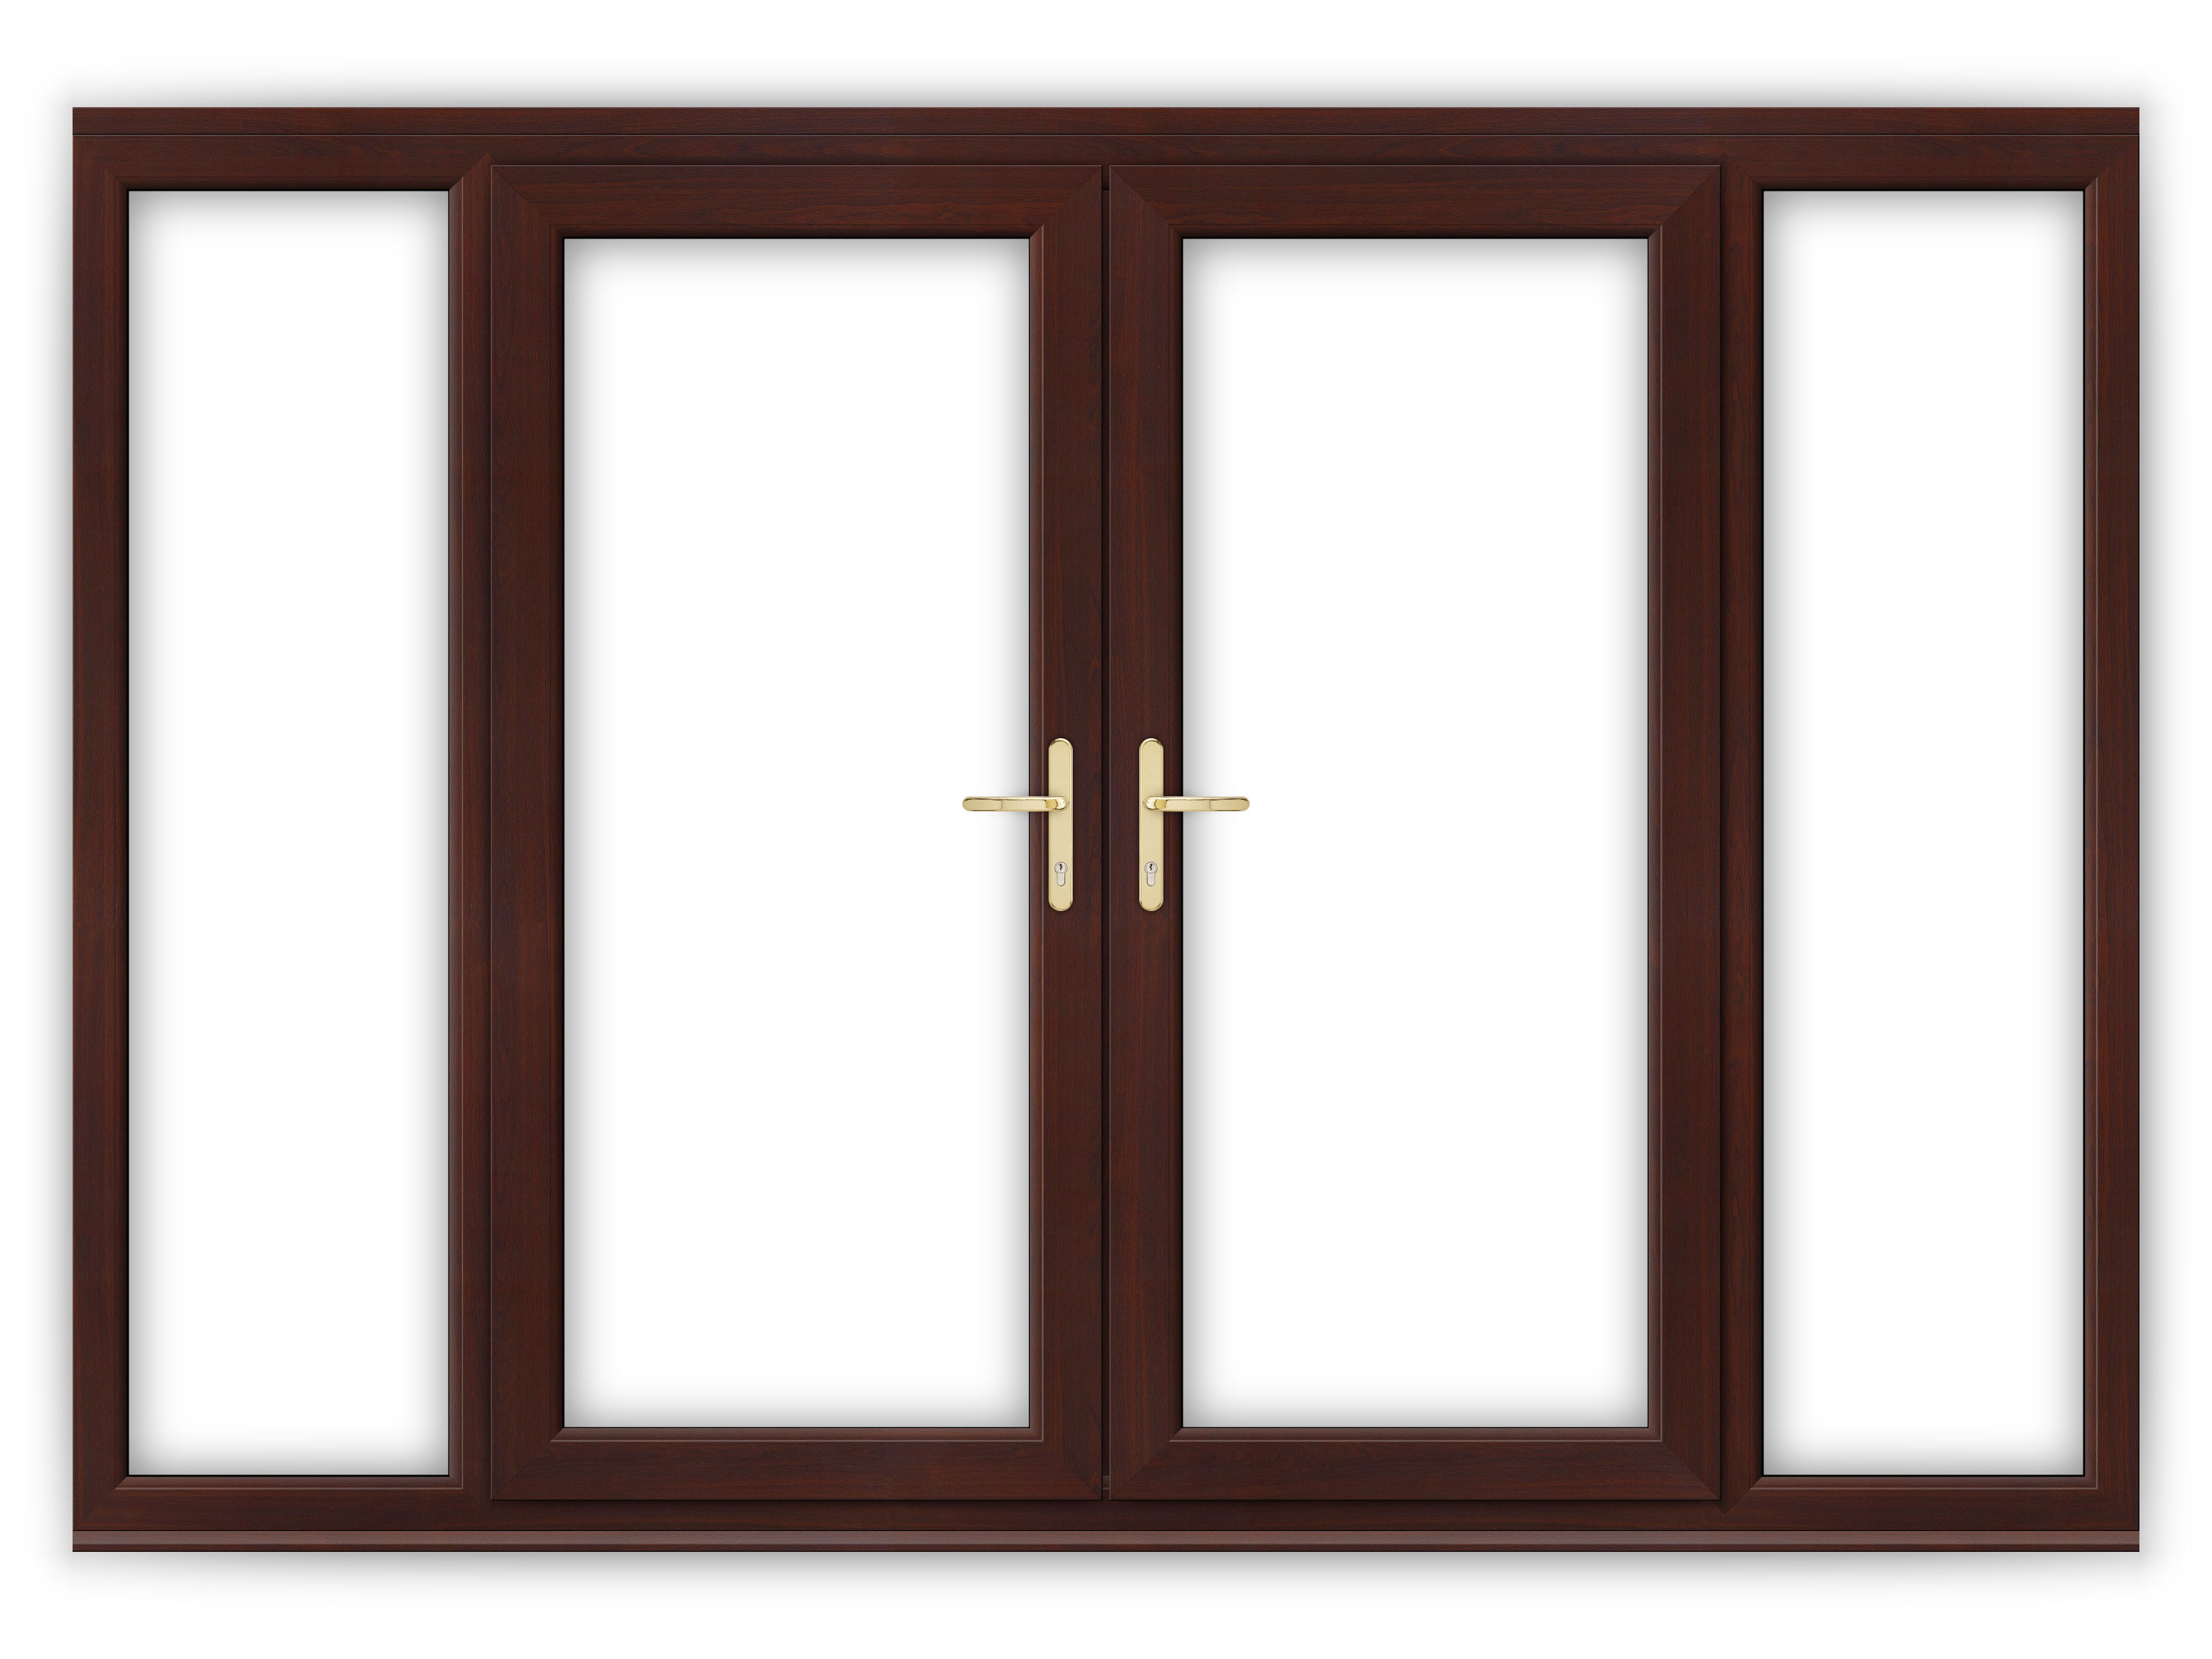 6ft rosewood upvc french doors with wide side panels for 5 ft french patio doors